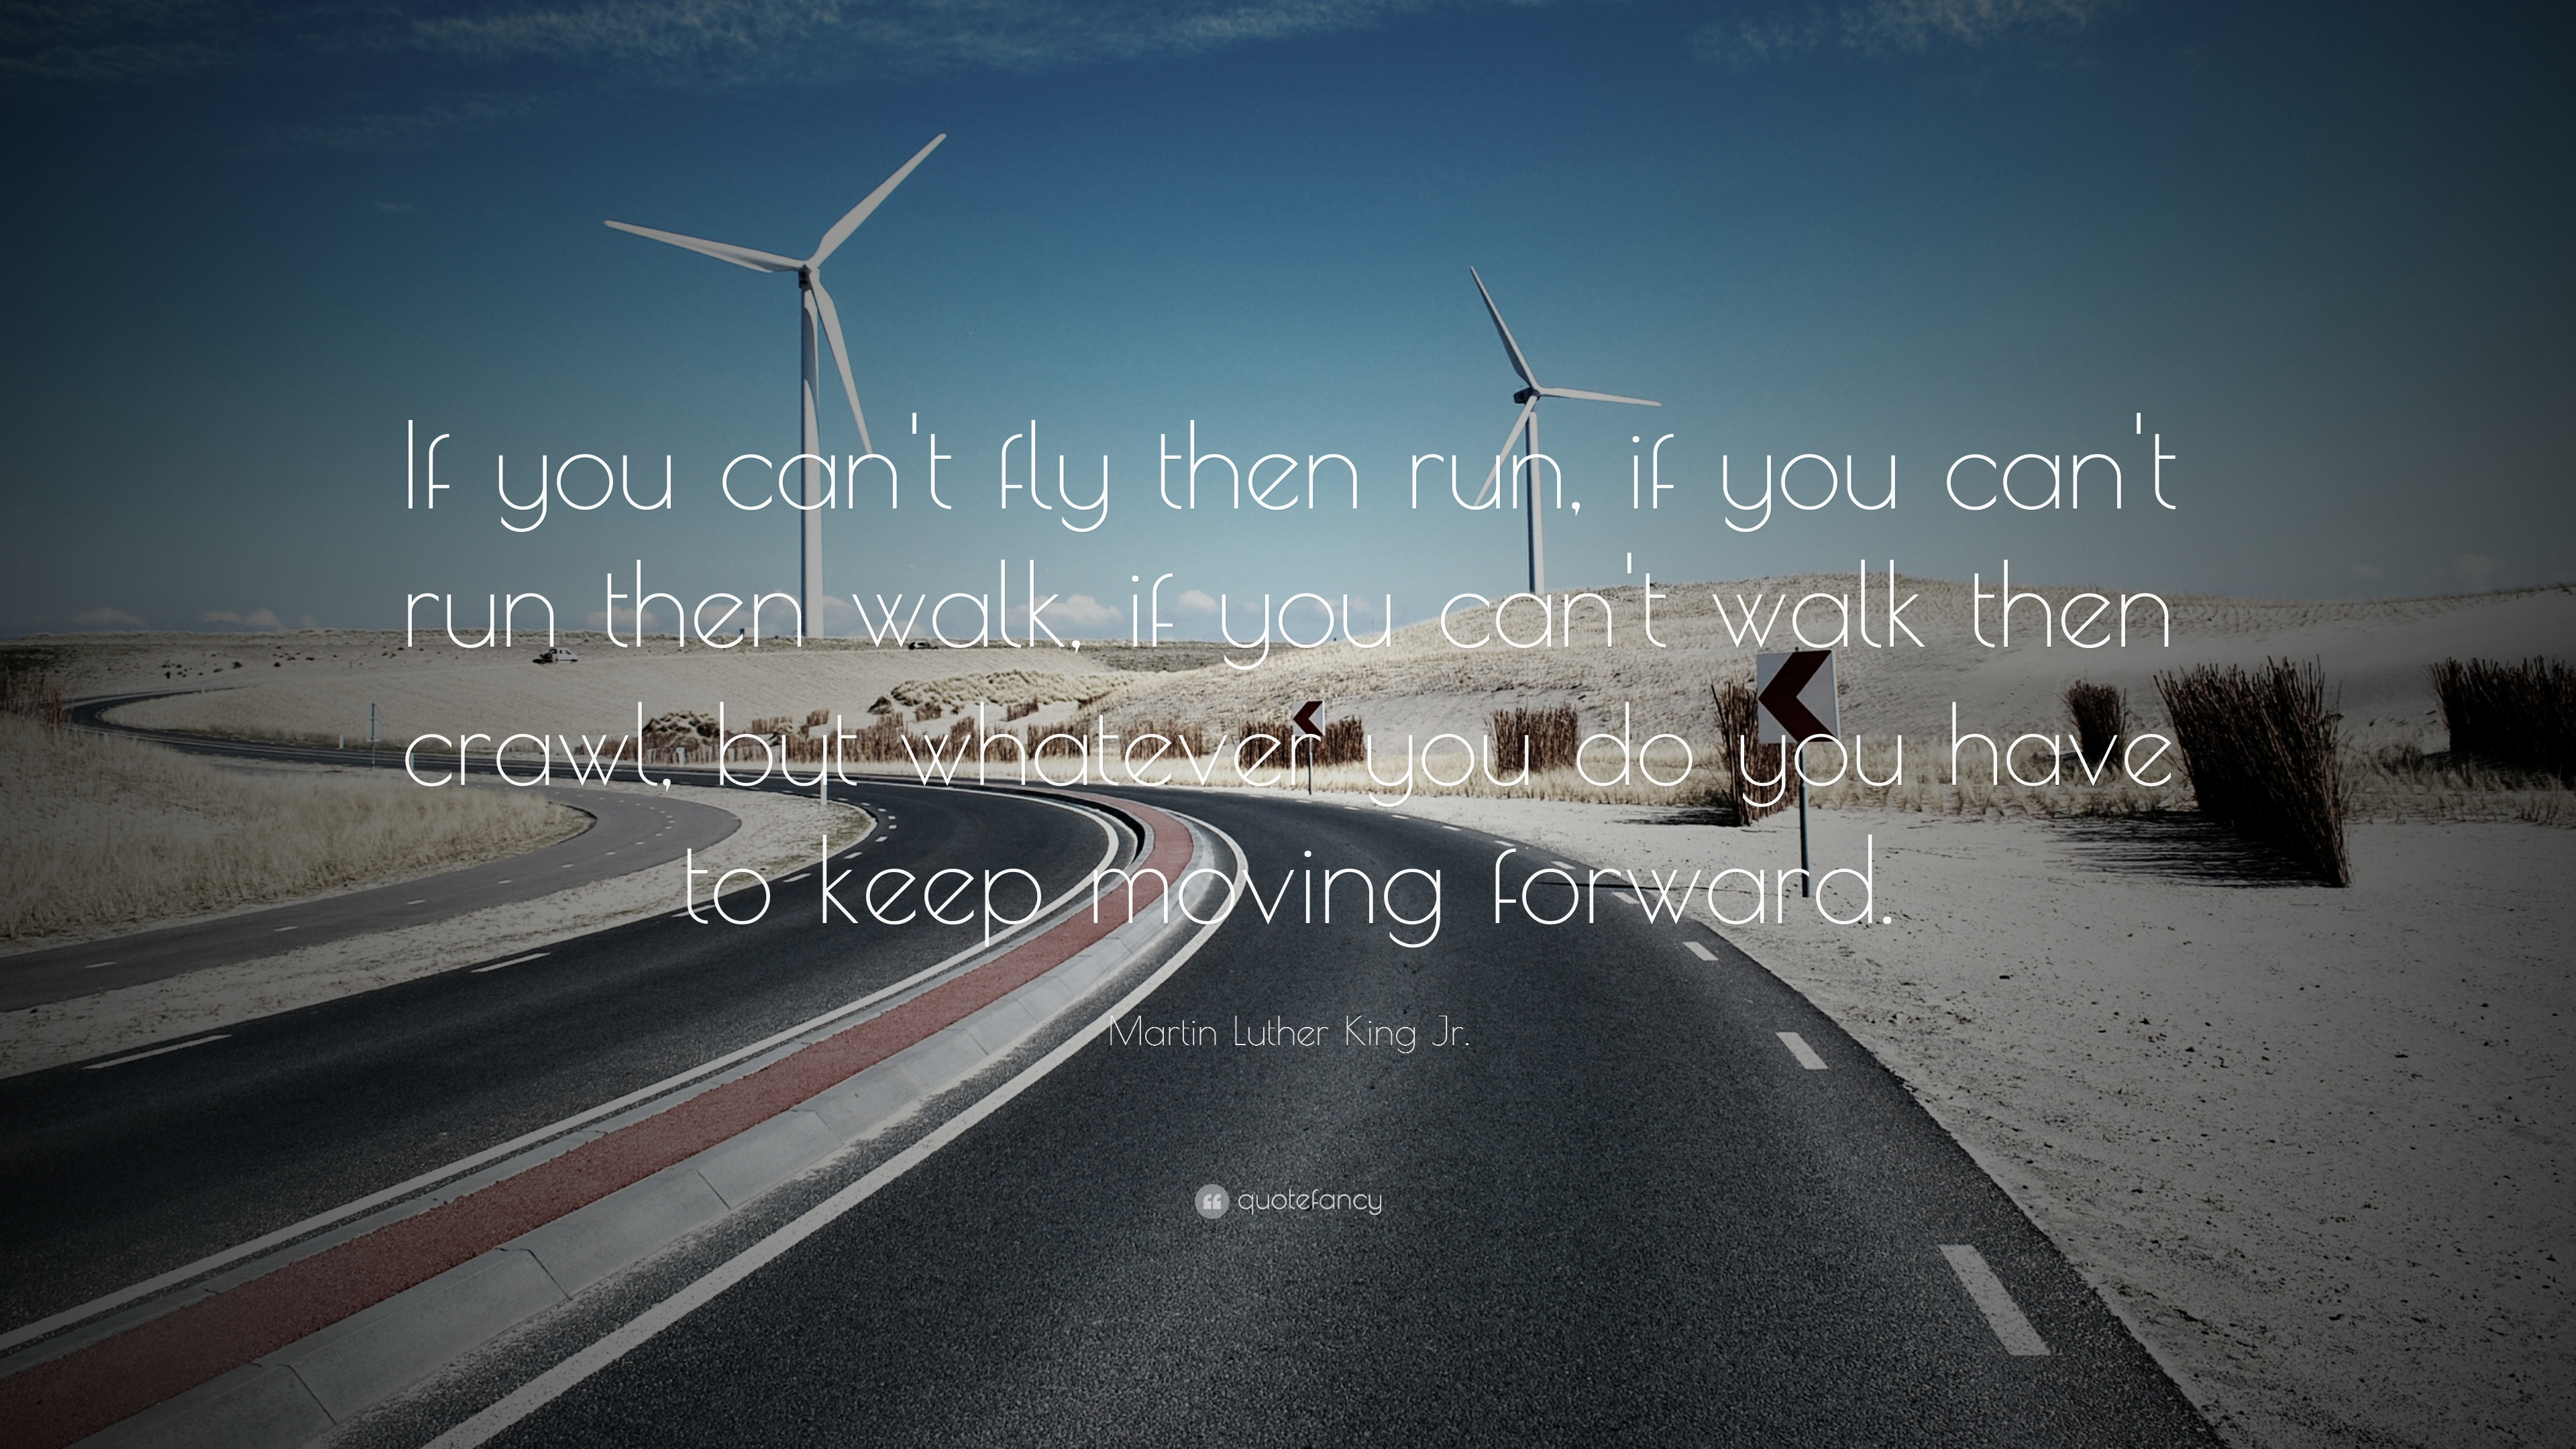 Never Fall In Love Wallpaper Martin Luther King Jr Quote If You Can T Fly Then Run